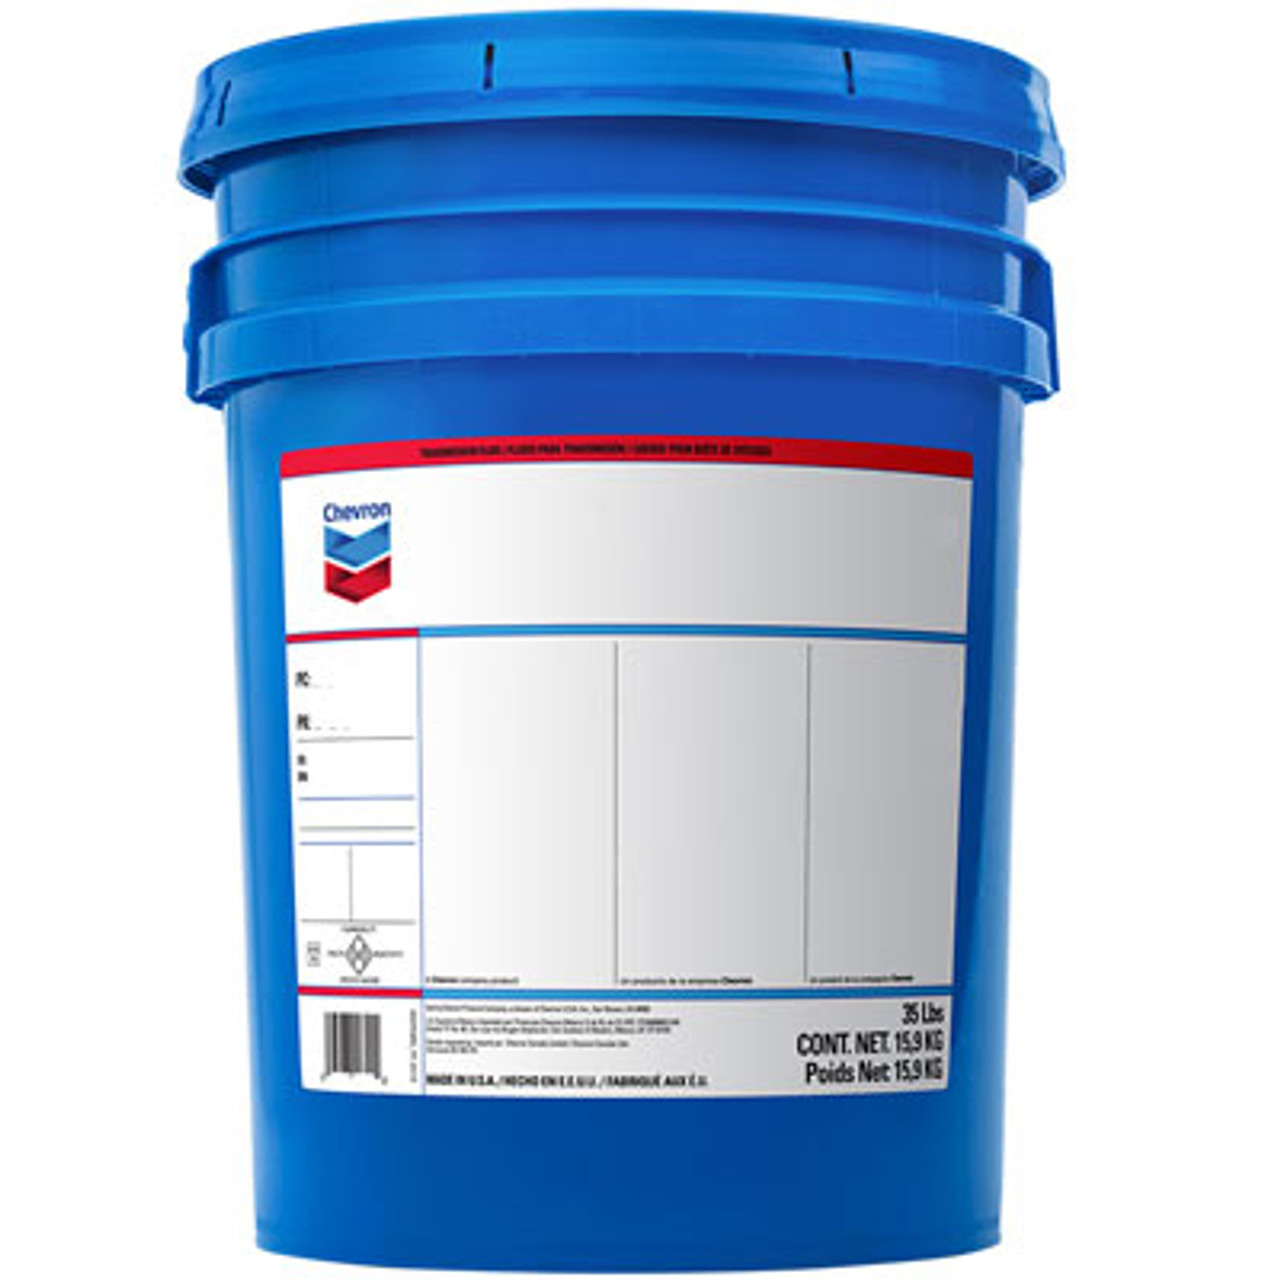 Chevron Meropa® 1000 Gear Oil - 35 Pound Pail